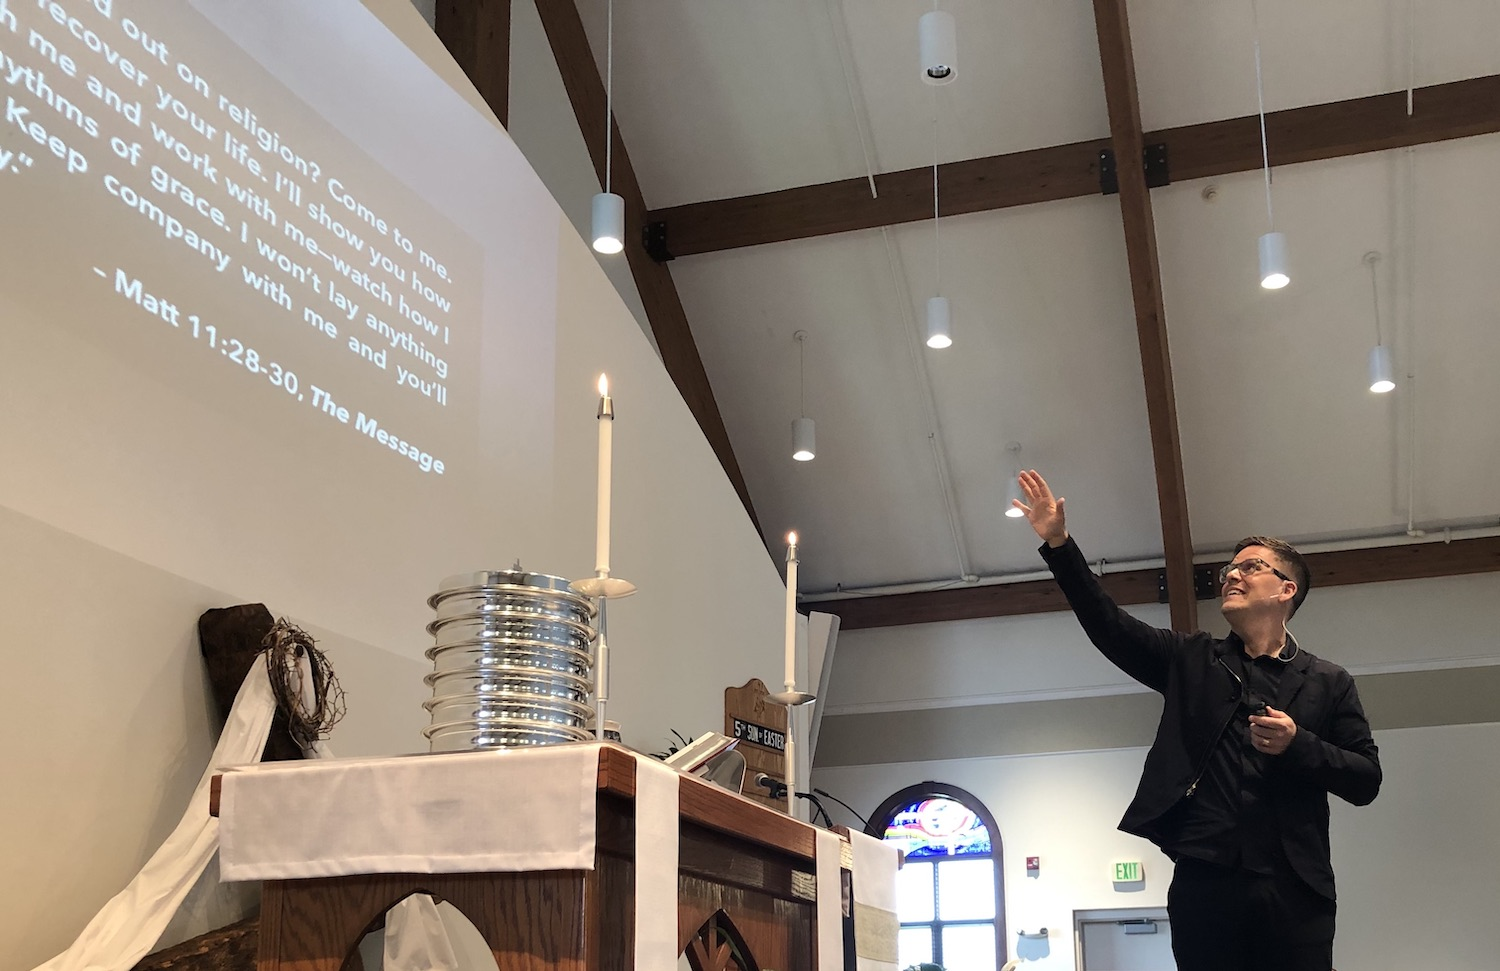 Aaron Niequist leads worship at Cross of Grace. May 19, 2019.